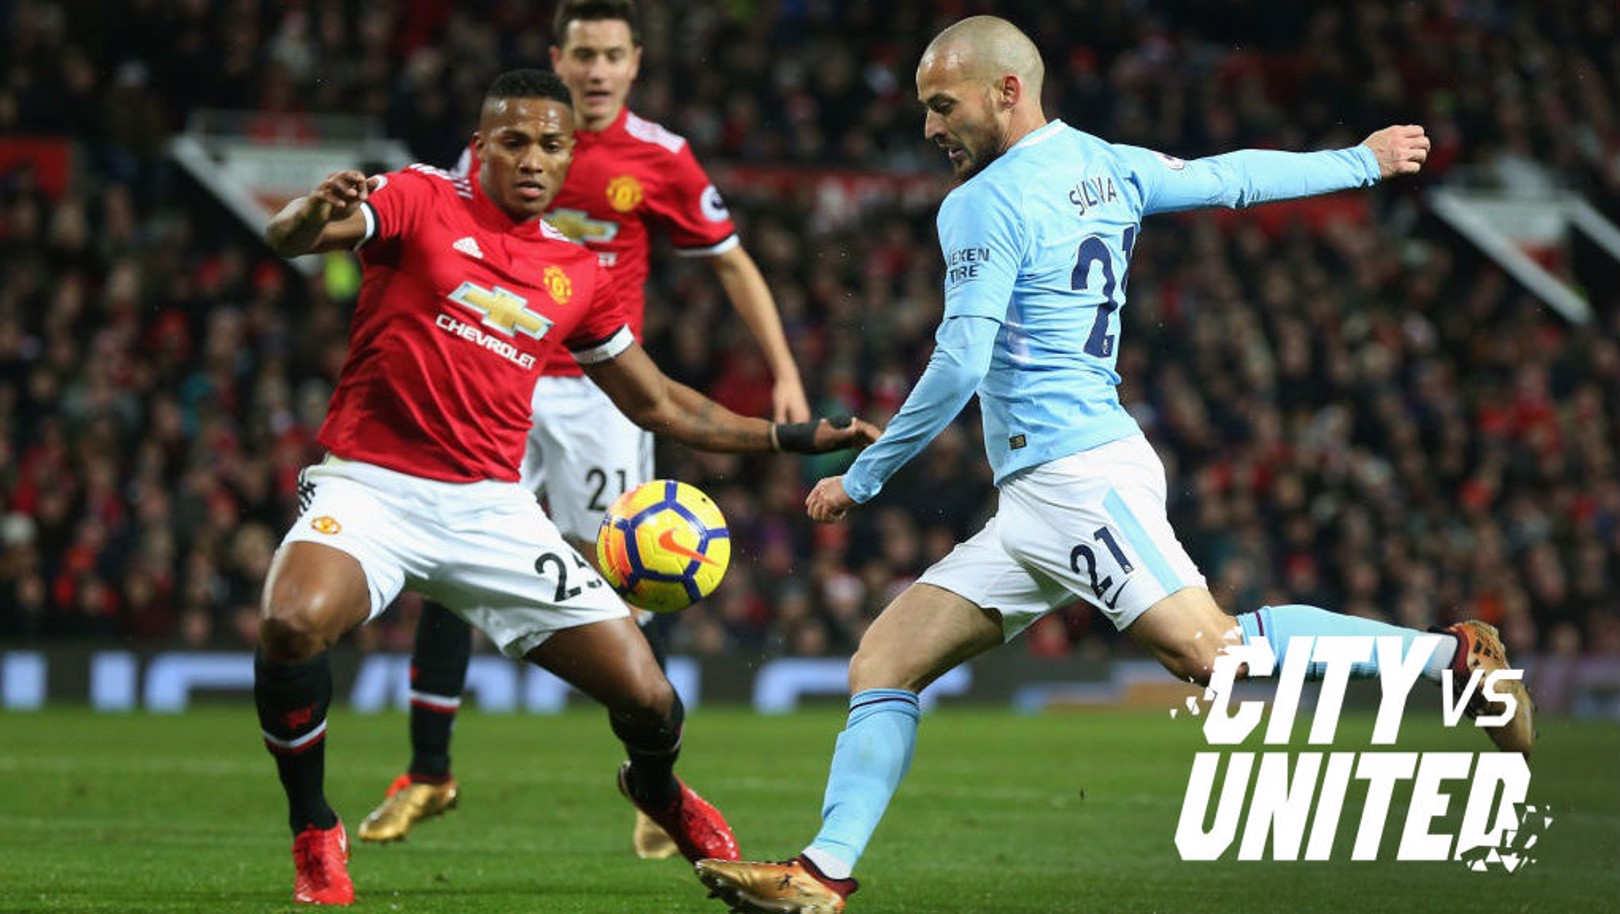 GLOBAL INTEREST: Saturday's clash will see the Etihad Stadium host a record 28 Premier League broadcast partners, with crews attending from across the globe...